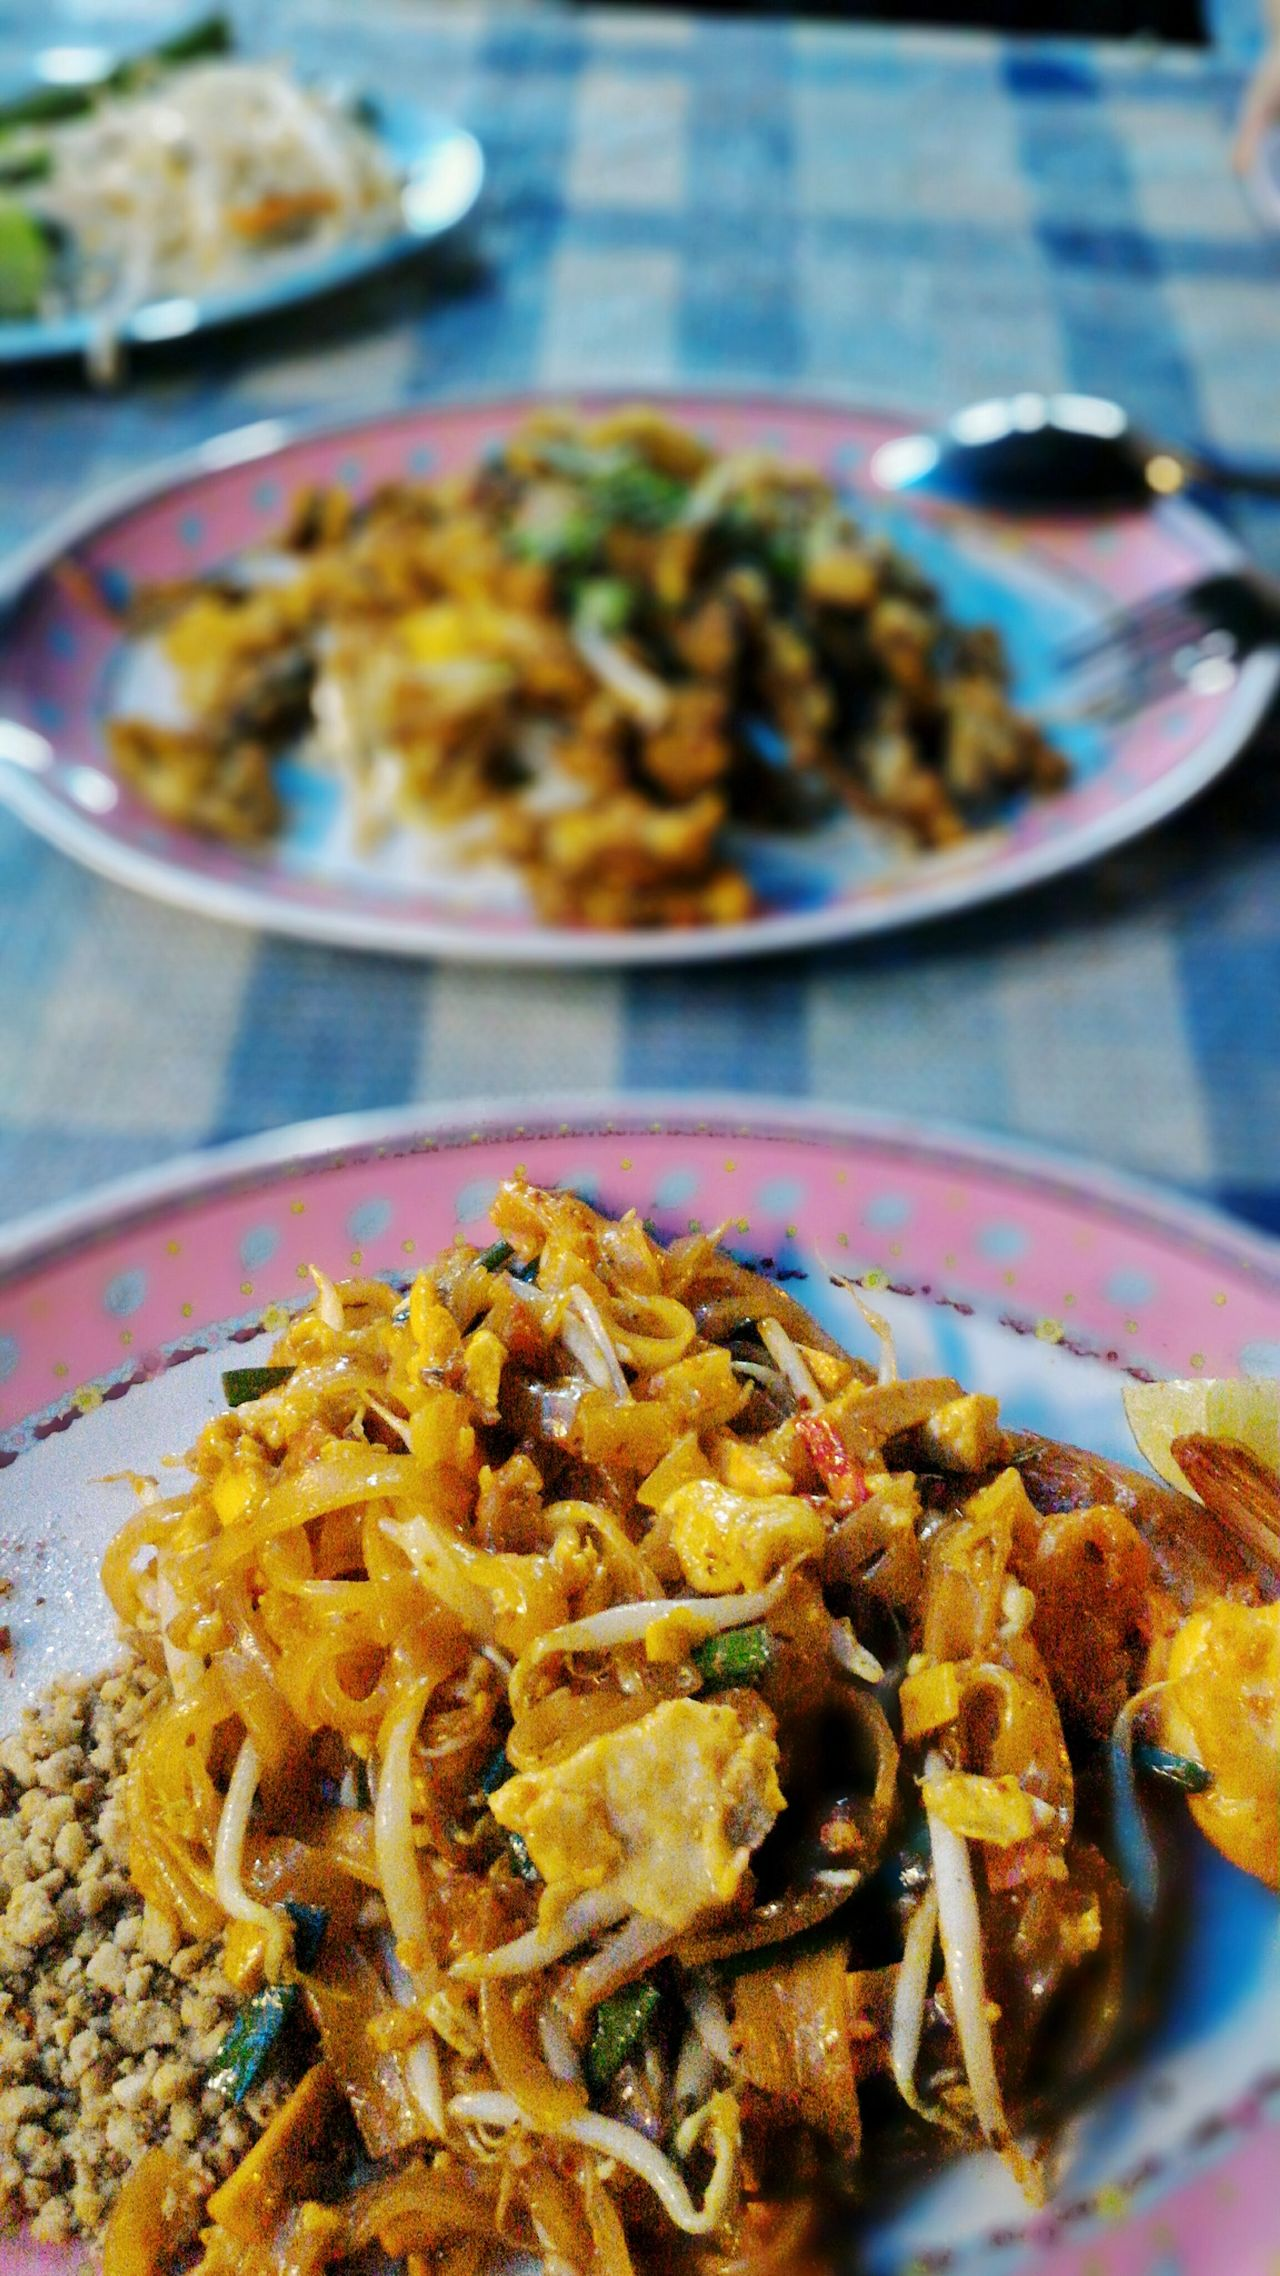 Street Food Worldwide Streetfood Food Porn Foodphotography Foodporn Night Photography Thailand Bangkok Phad Thai Phadthai First Eyeem Photo Dinner Time Close-up Close Up Blurred Background Thai Food